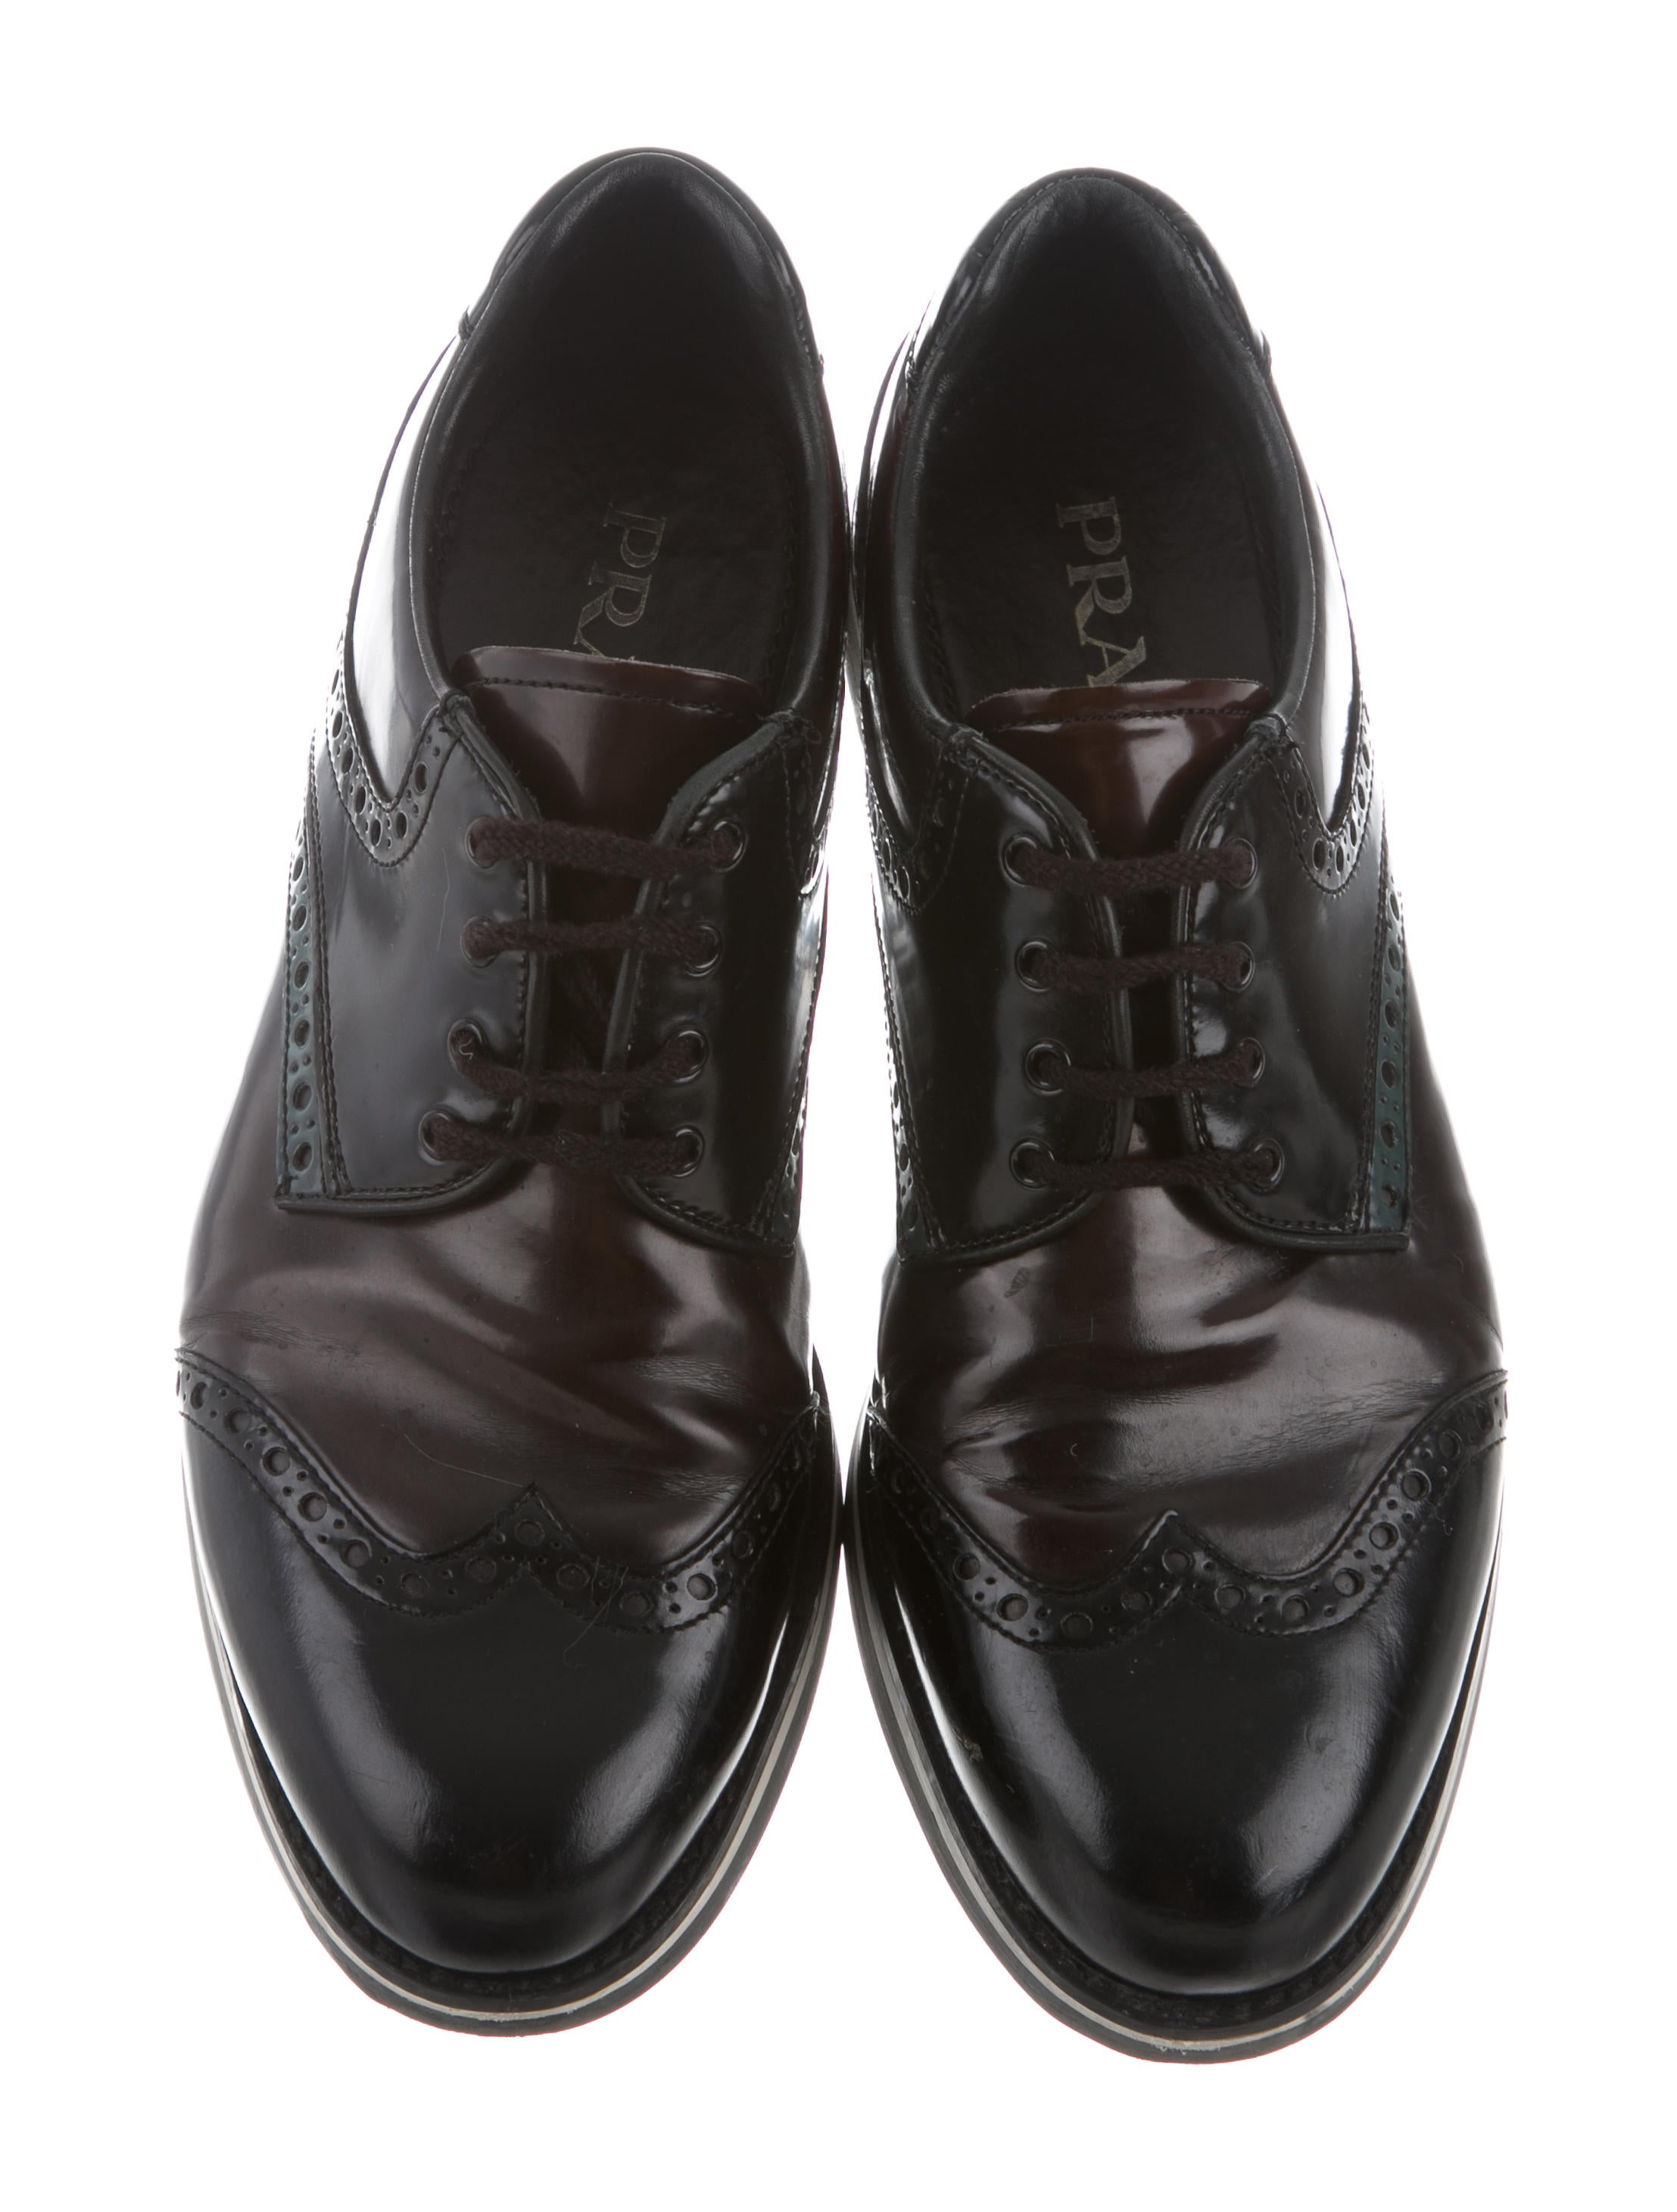 Prada Brogue Lace-Up Oxfords clearance outlet store 2014 newest cheap price great deals for sale best seller JN5PMmiYF